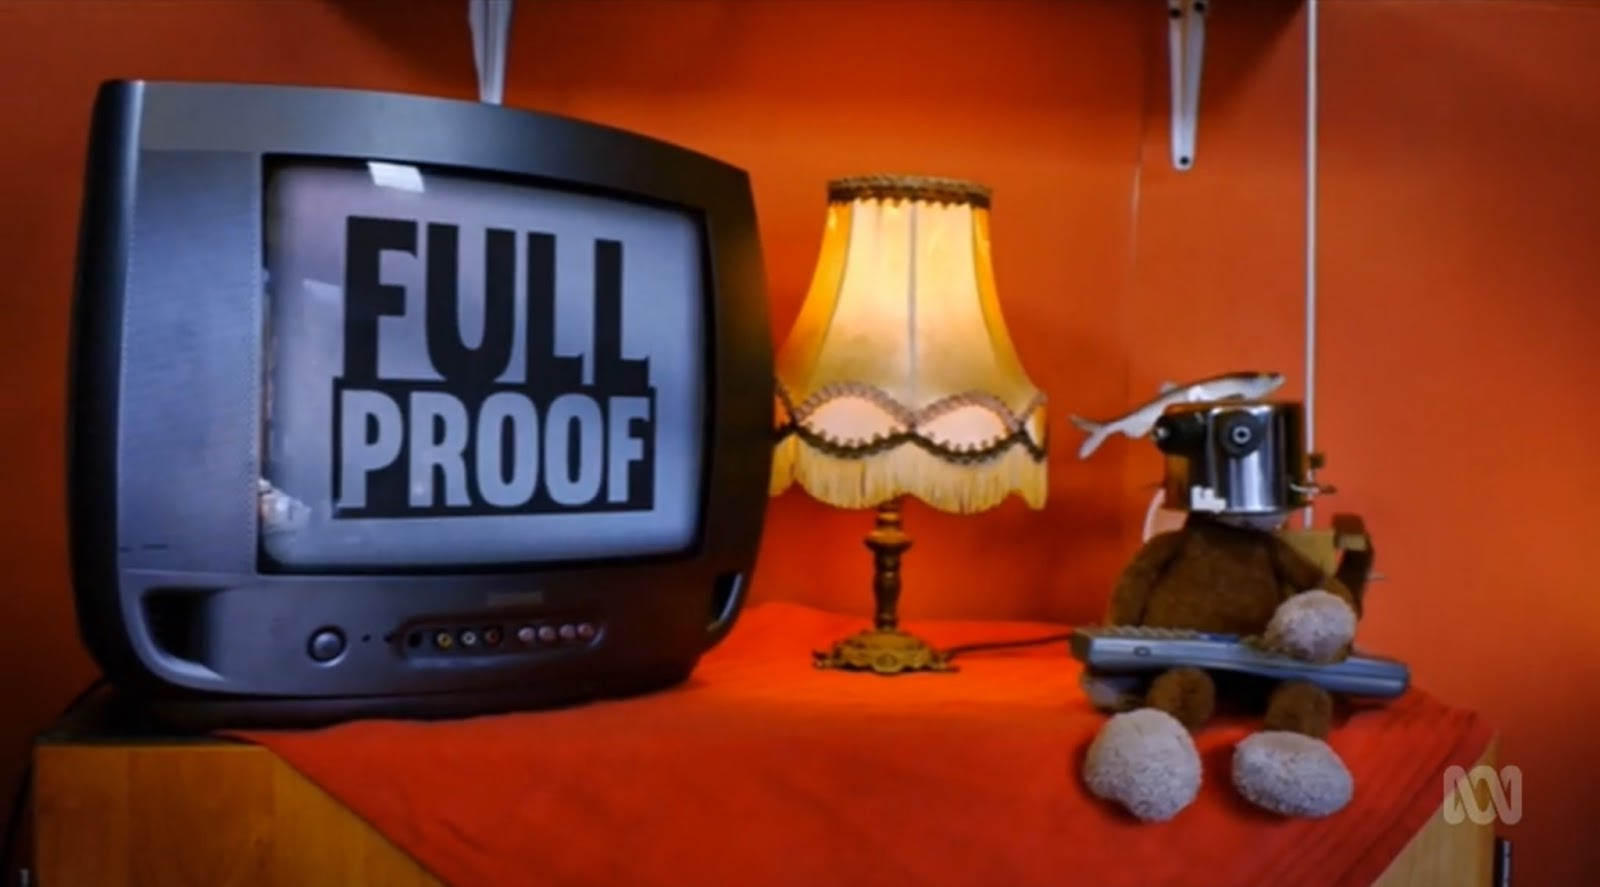 best educational kids shows abc iview full proof